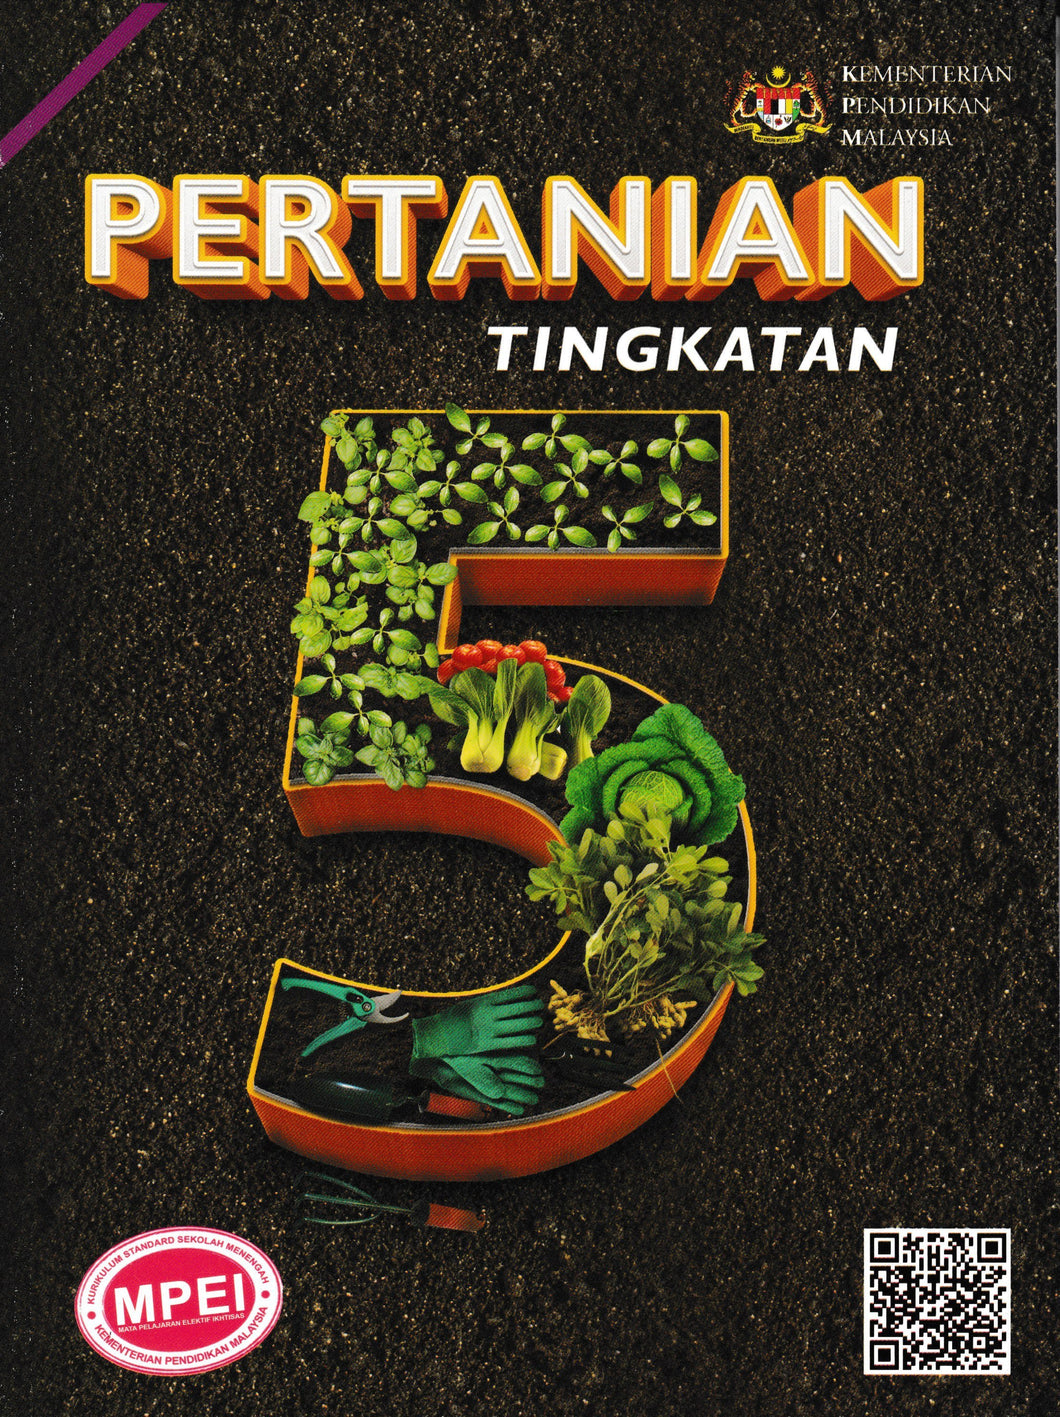 MultiEducational: Buku Teks Pertanian Tingkatan 5